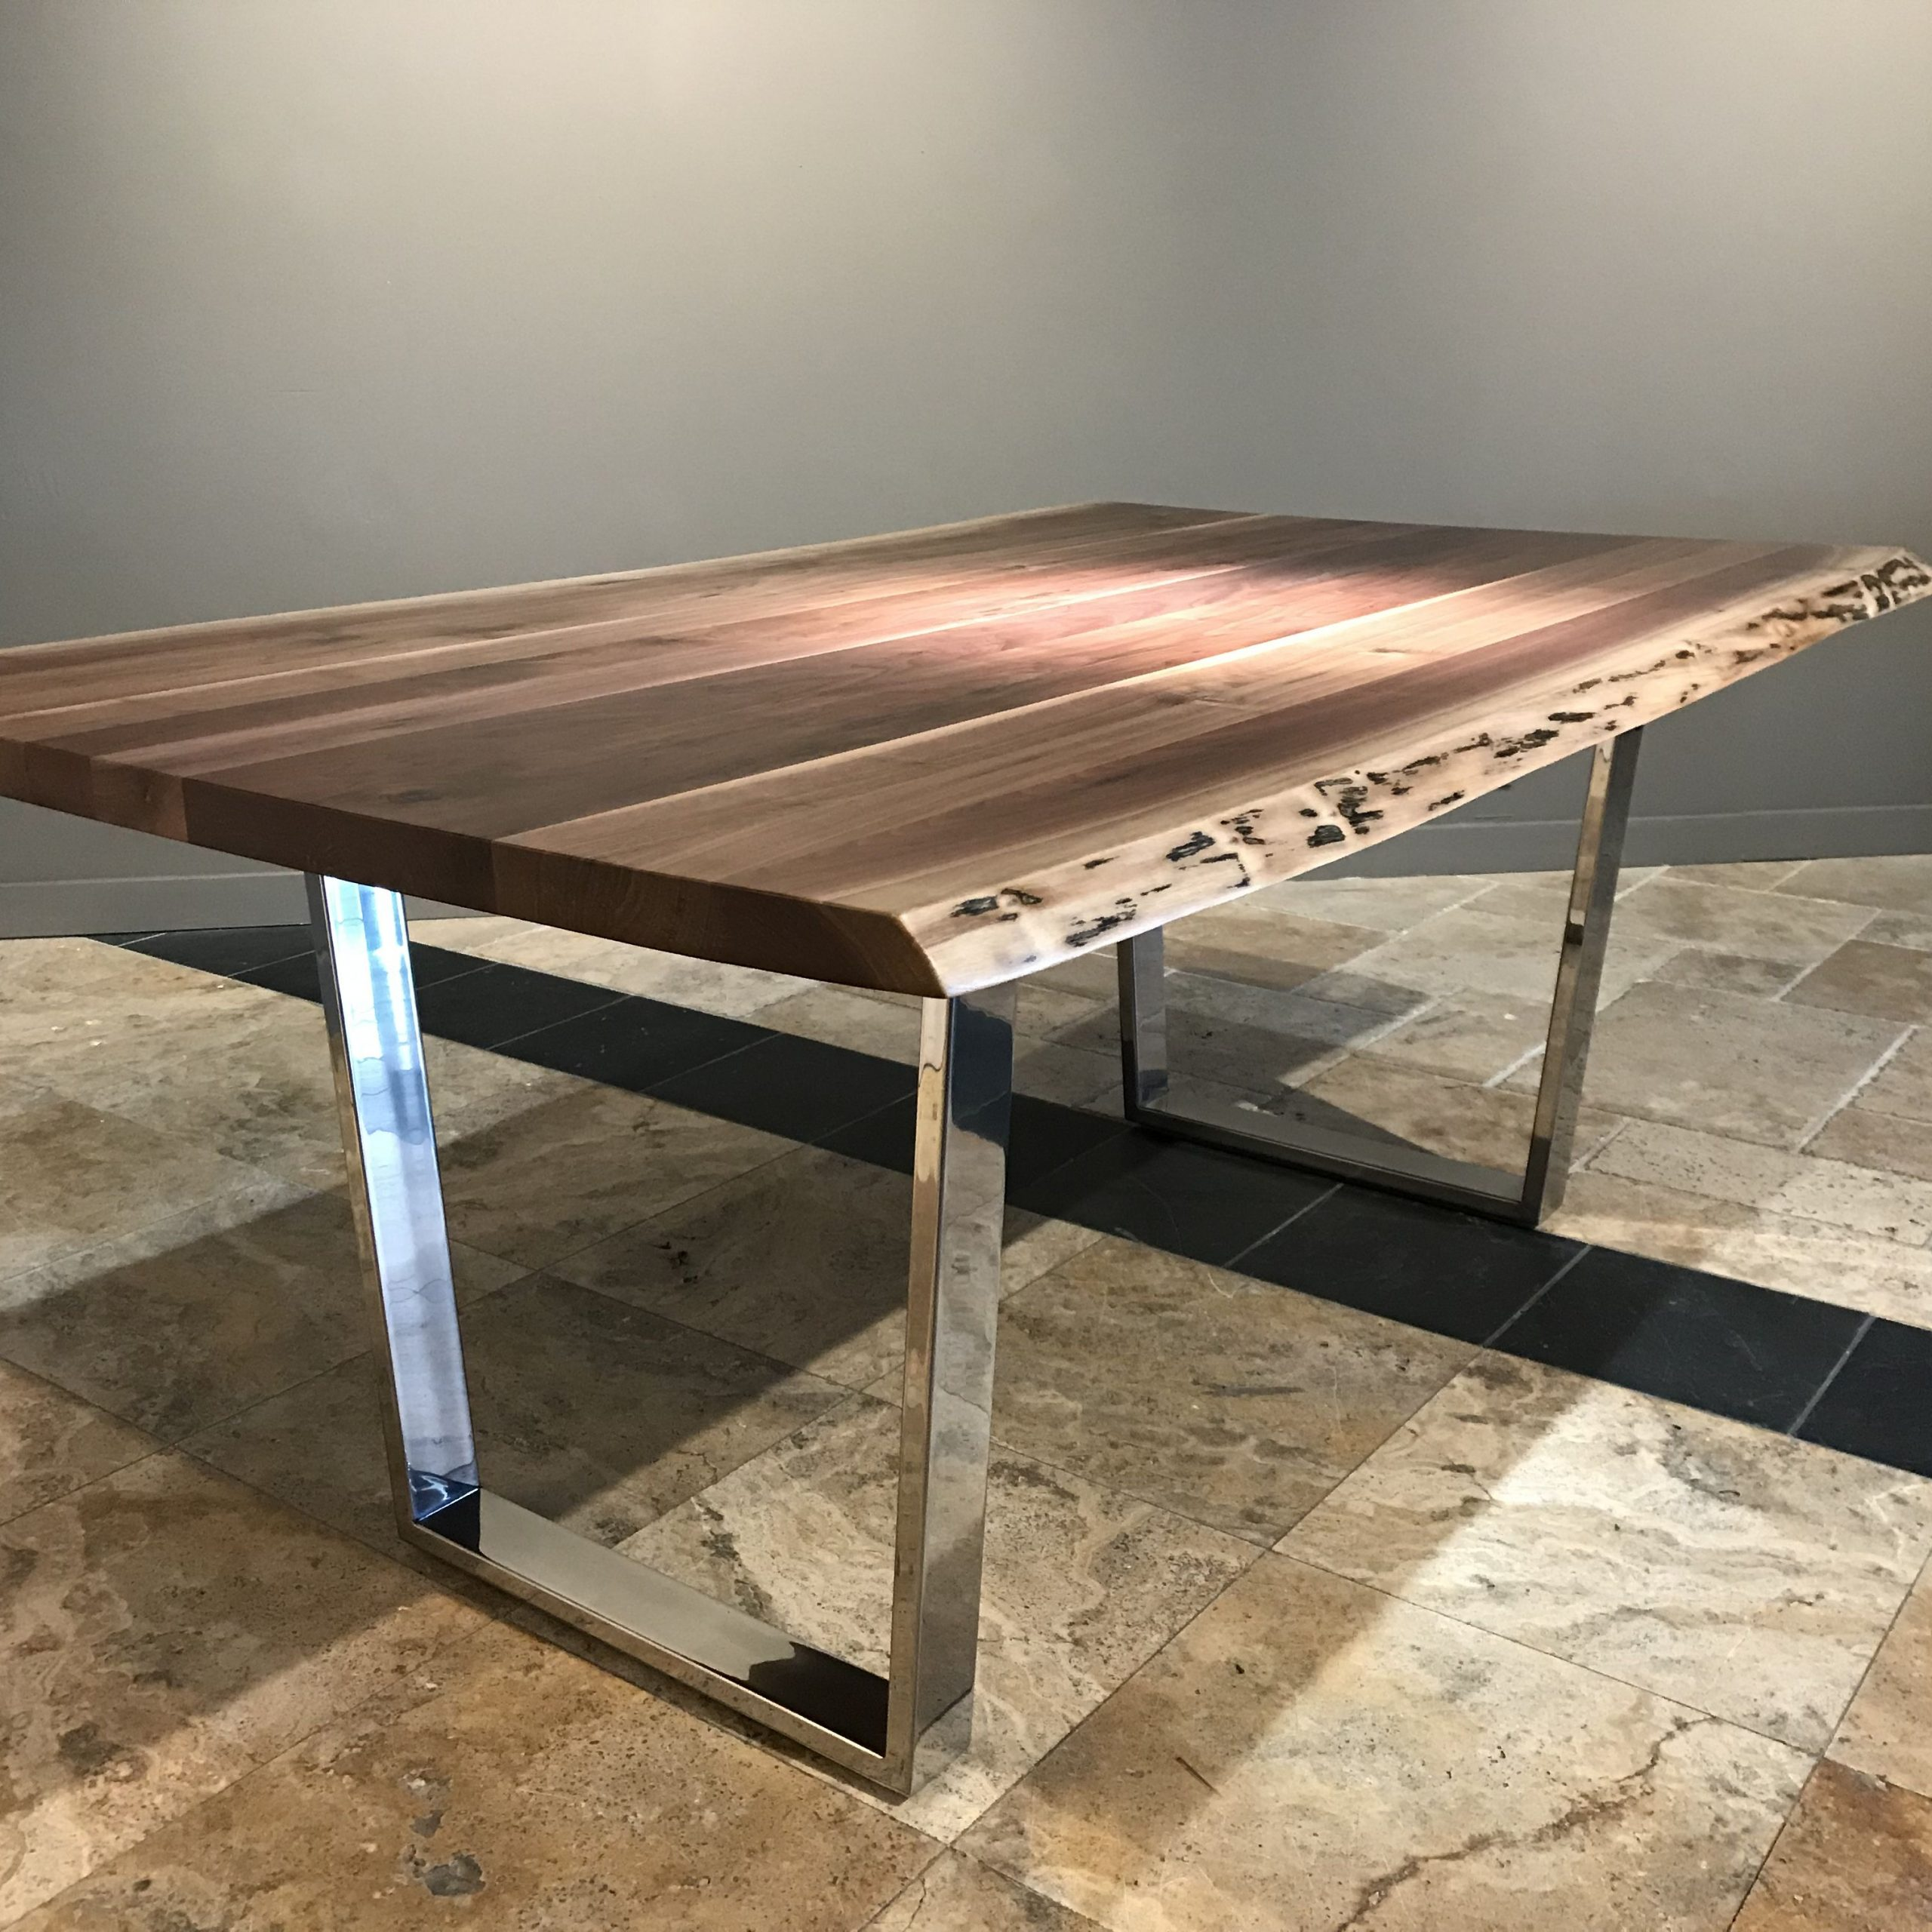 Newest Walnut Finish Live Edge Wood Contemporary Dining Tables Inside Buy A Custom Live Edge Dining Table, Made To Order From (View 13 of 25)